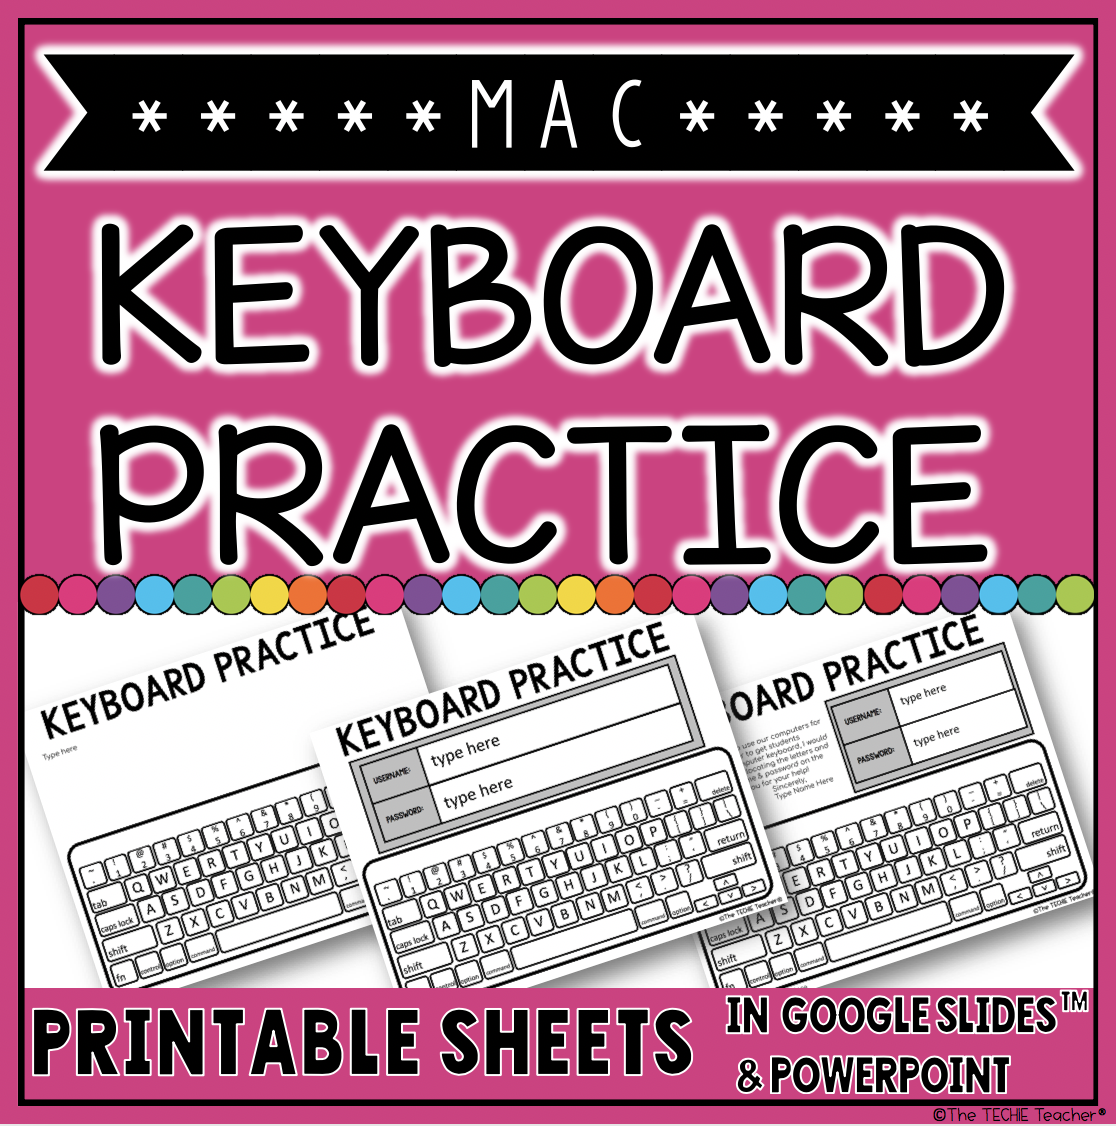 MAC Keyboard Practice Sheets for logging in